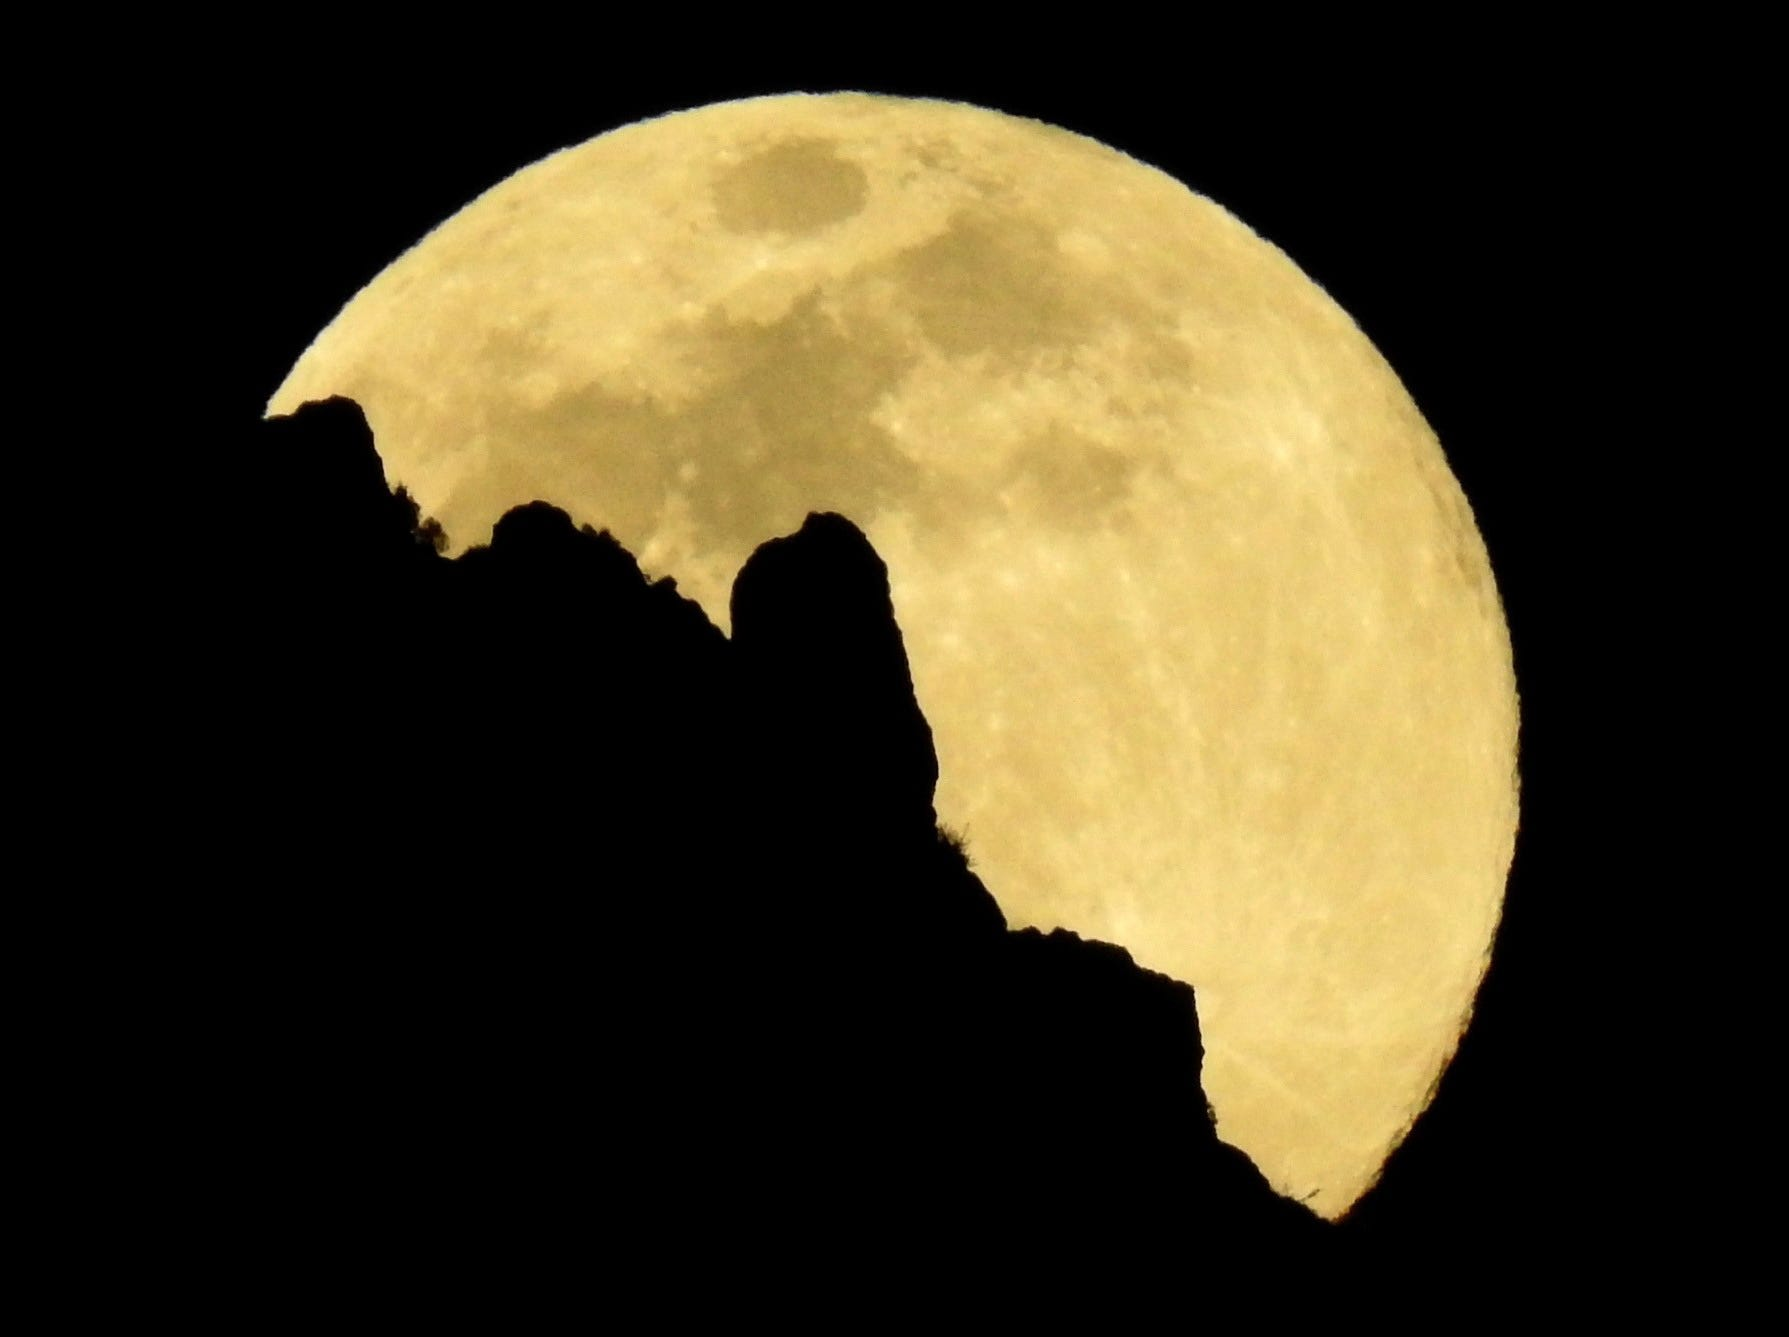 A view of the supermoon that announces the start of the spring over the Pico Sacro mountain from Santiago de Compostela, Galicia, Spain March 20, 2019.